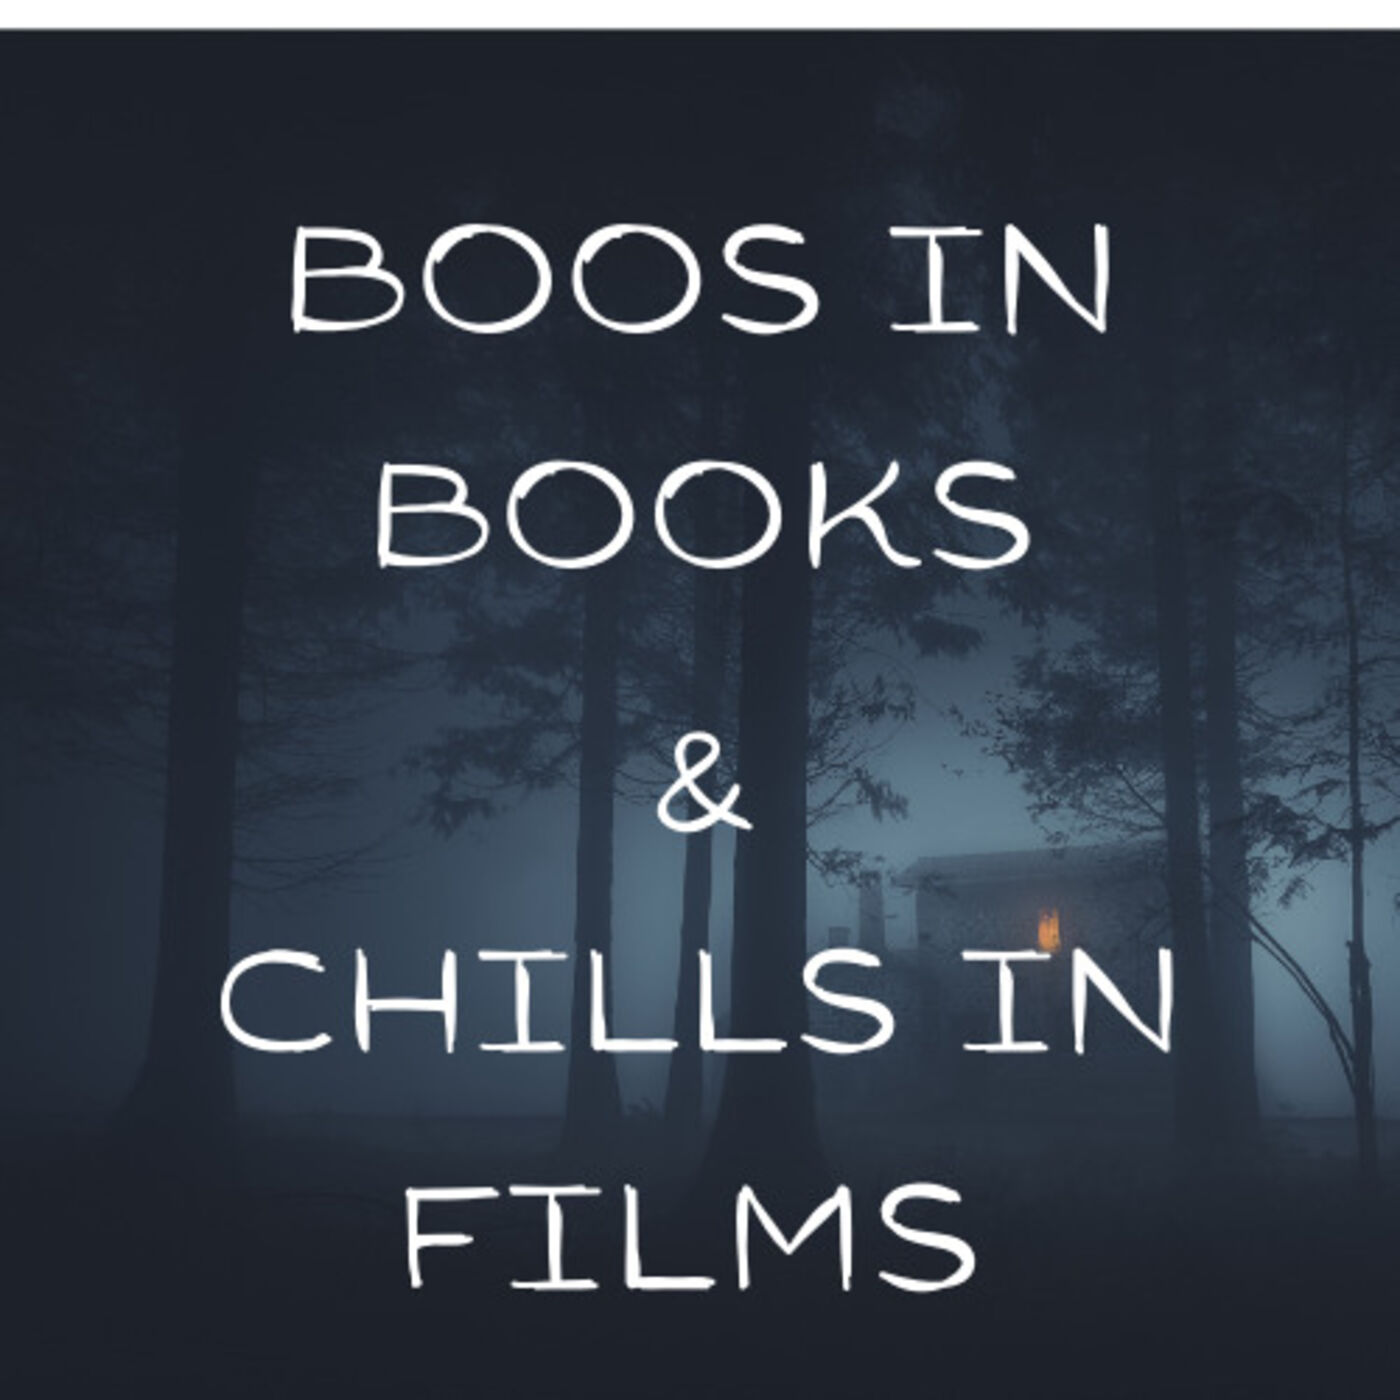 Boos in Books and Chills in Films